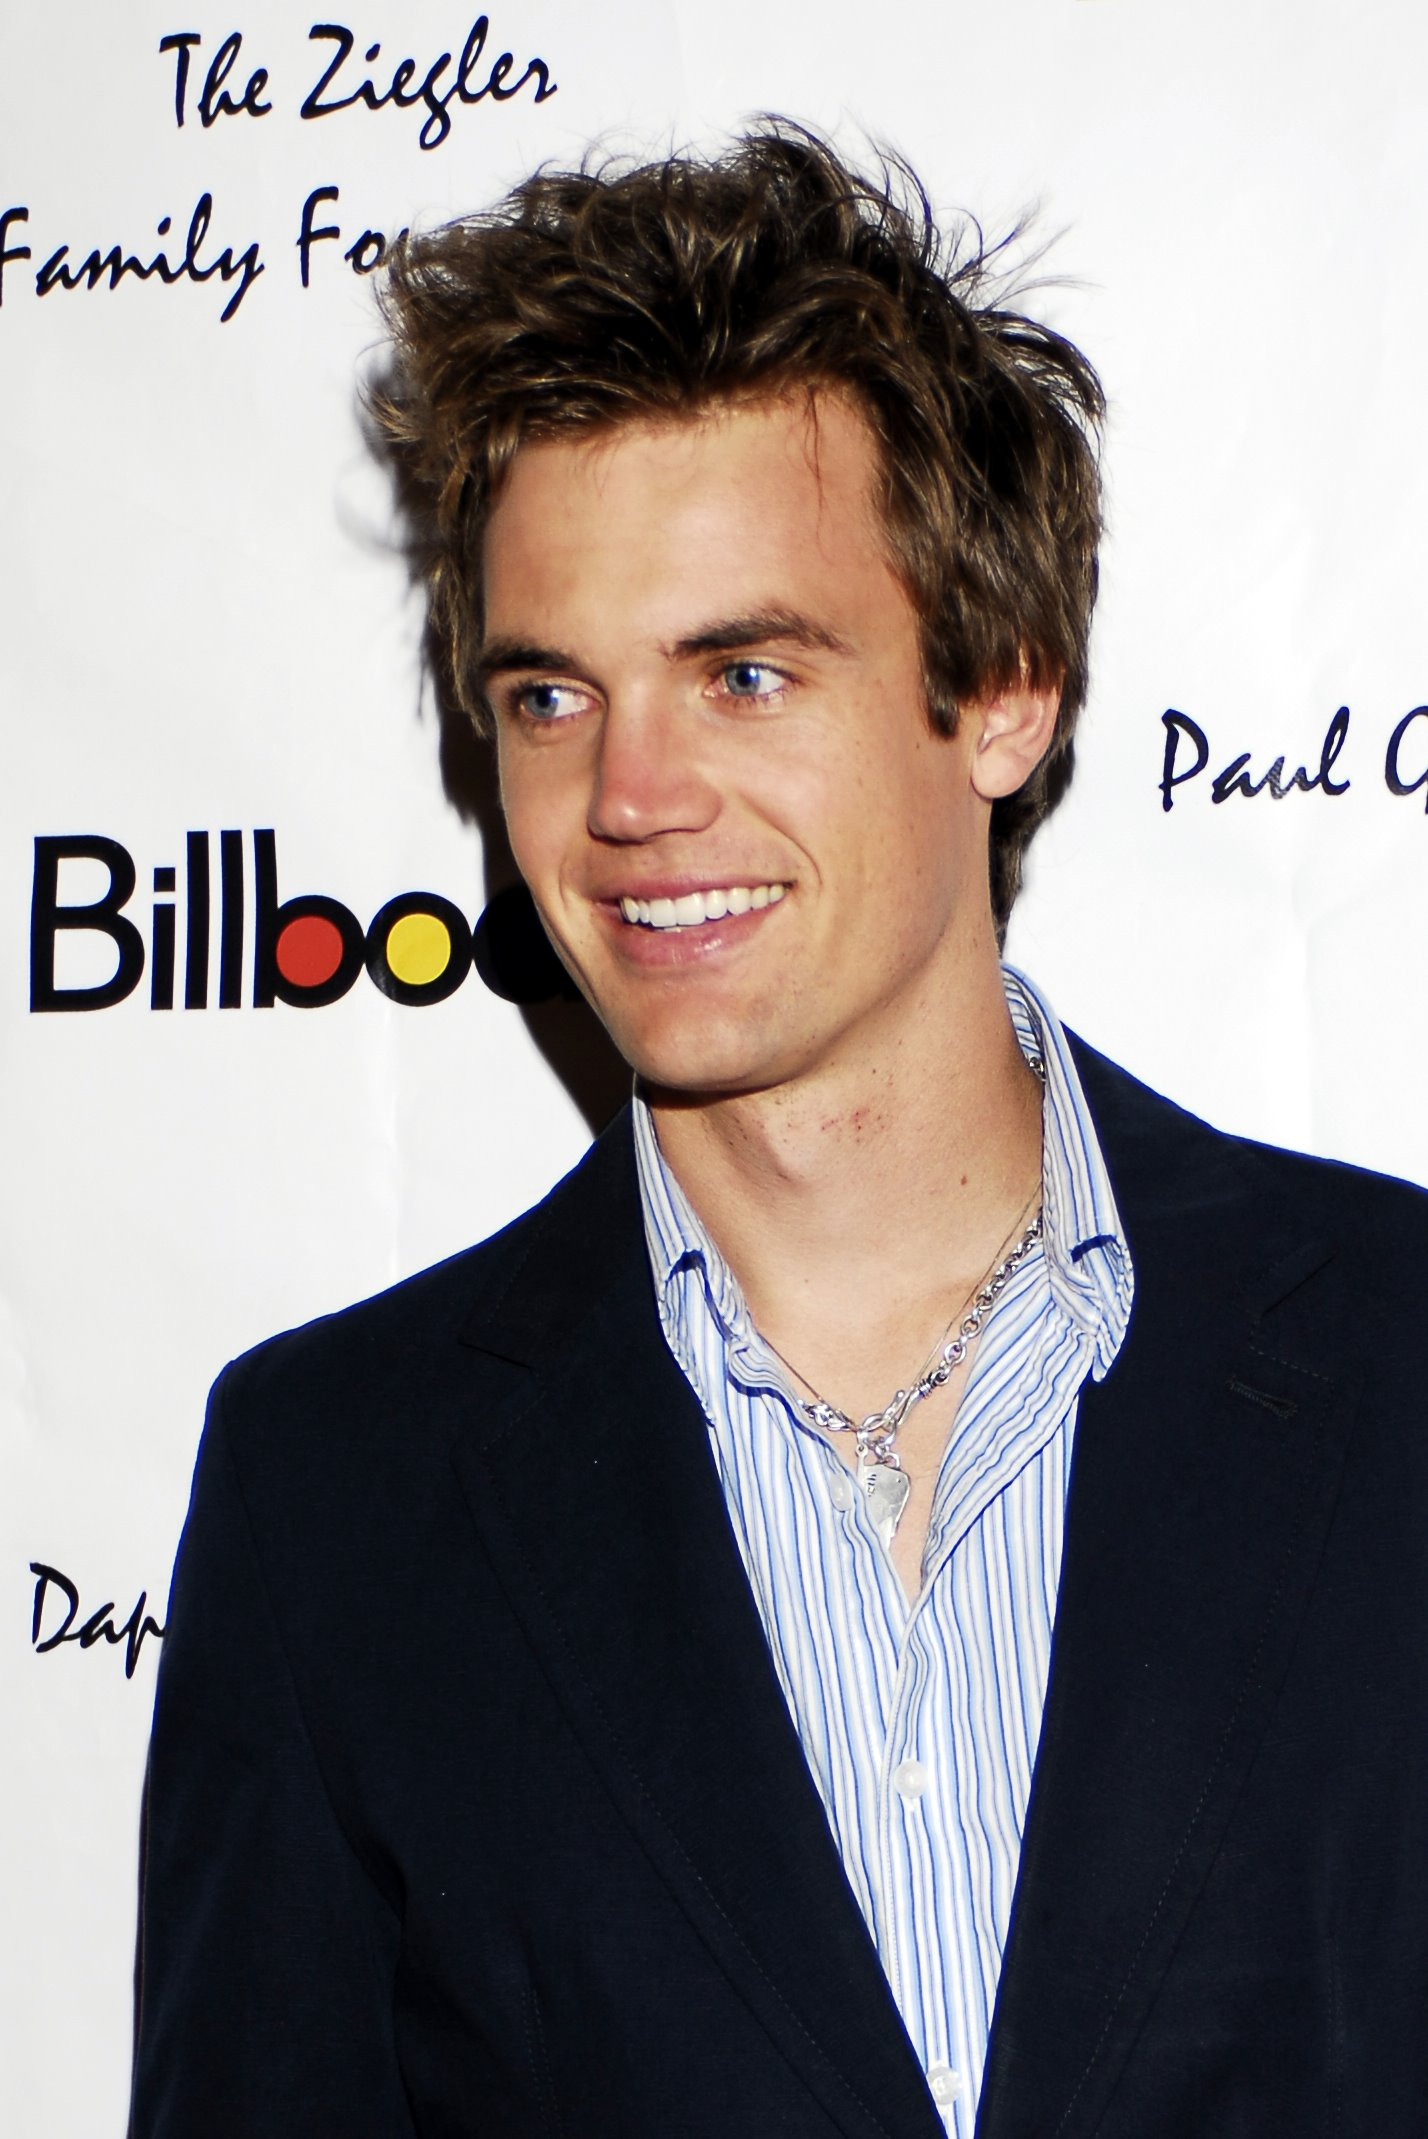 Tyler Hilton earned a  million dollar salary, leaving the net worth at 1.5 million in 2017